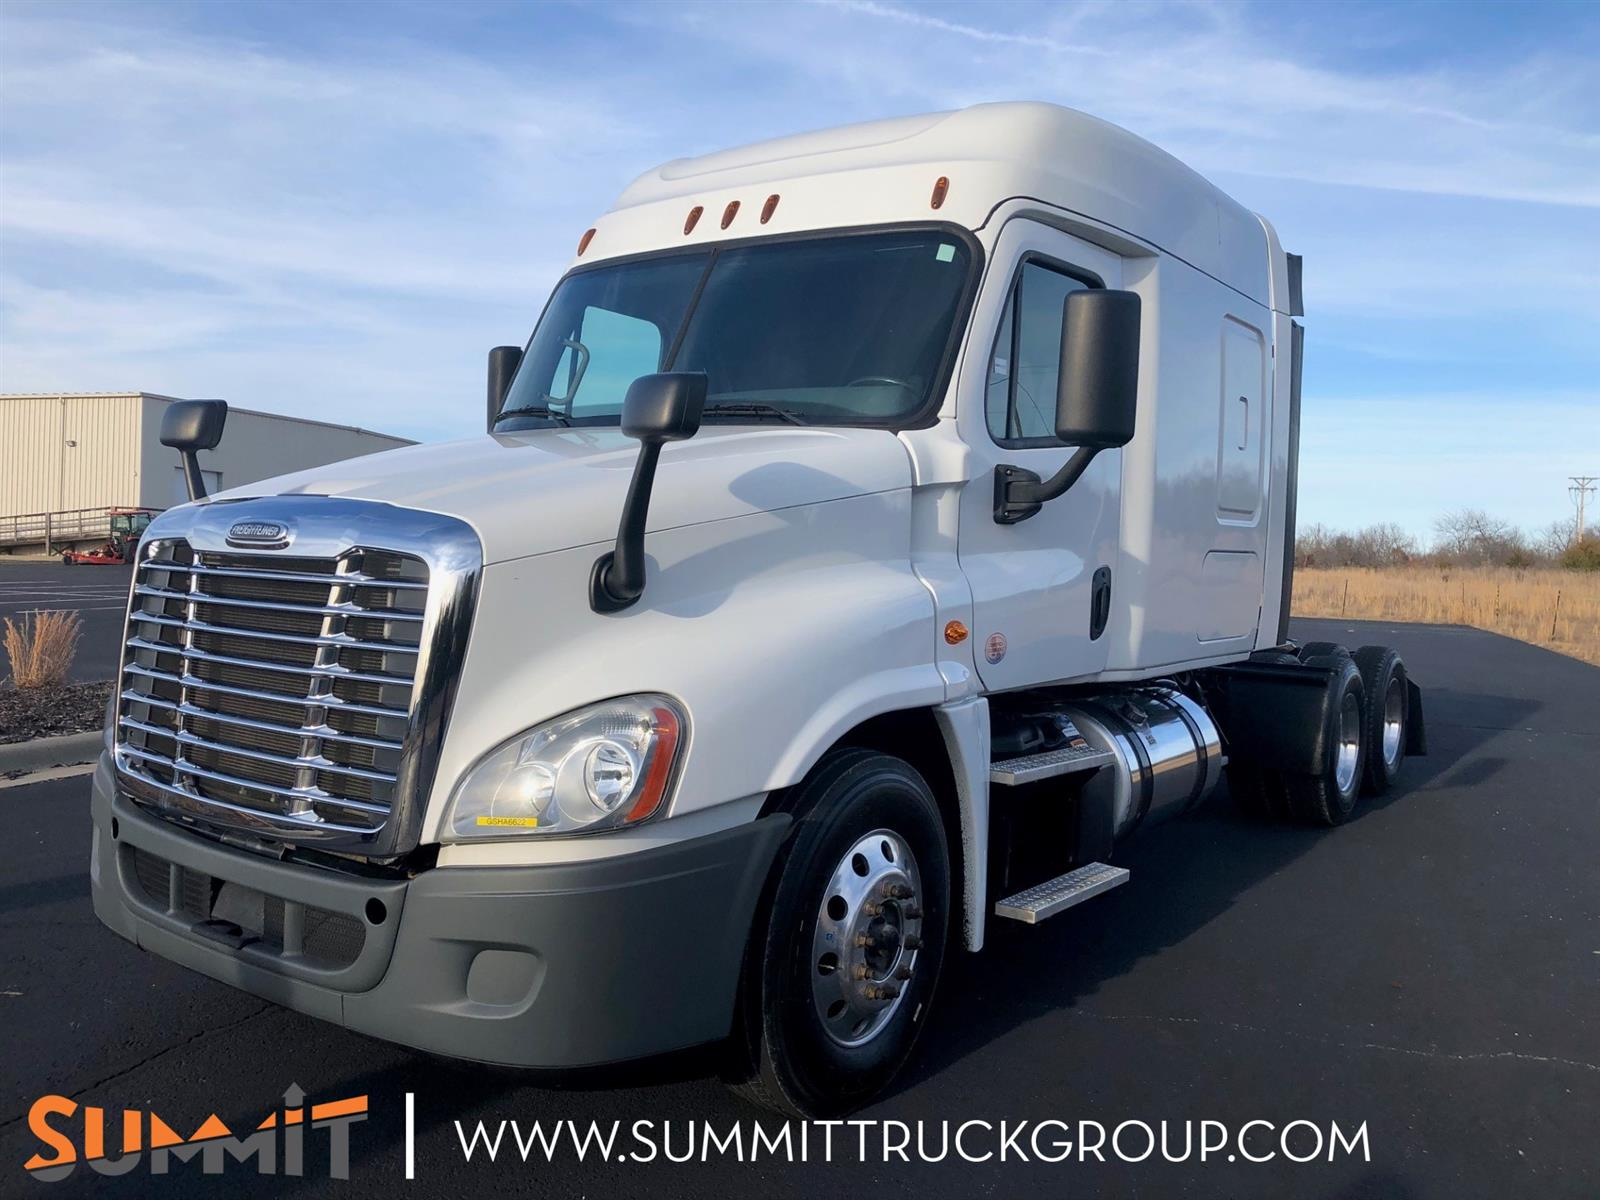 2016 Freightliner Truck Sleeper Cab 6x4, Tractor #150P202434 - photo 1